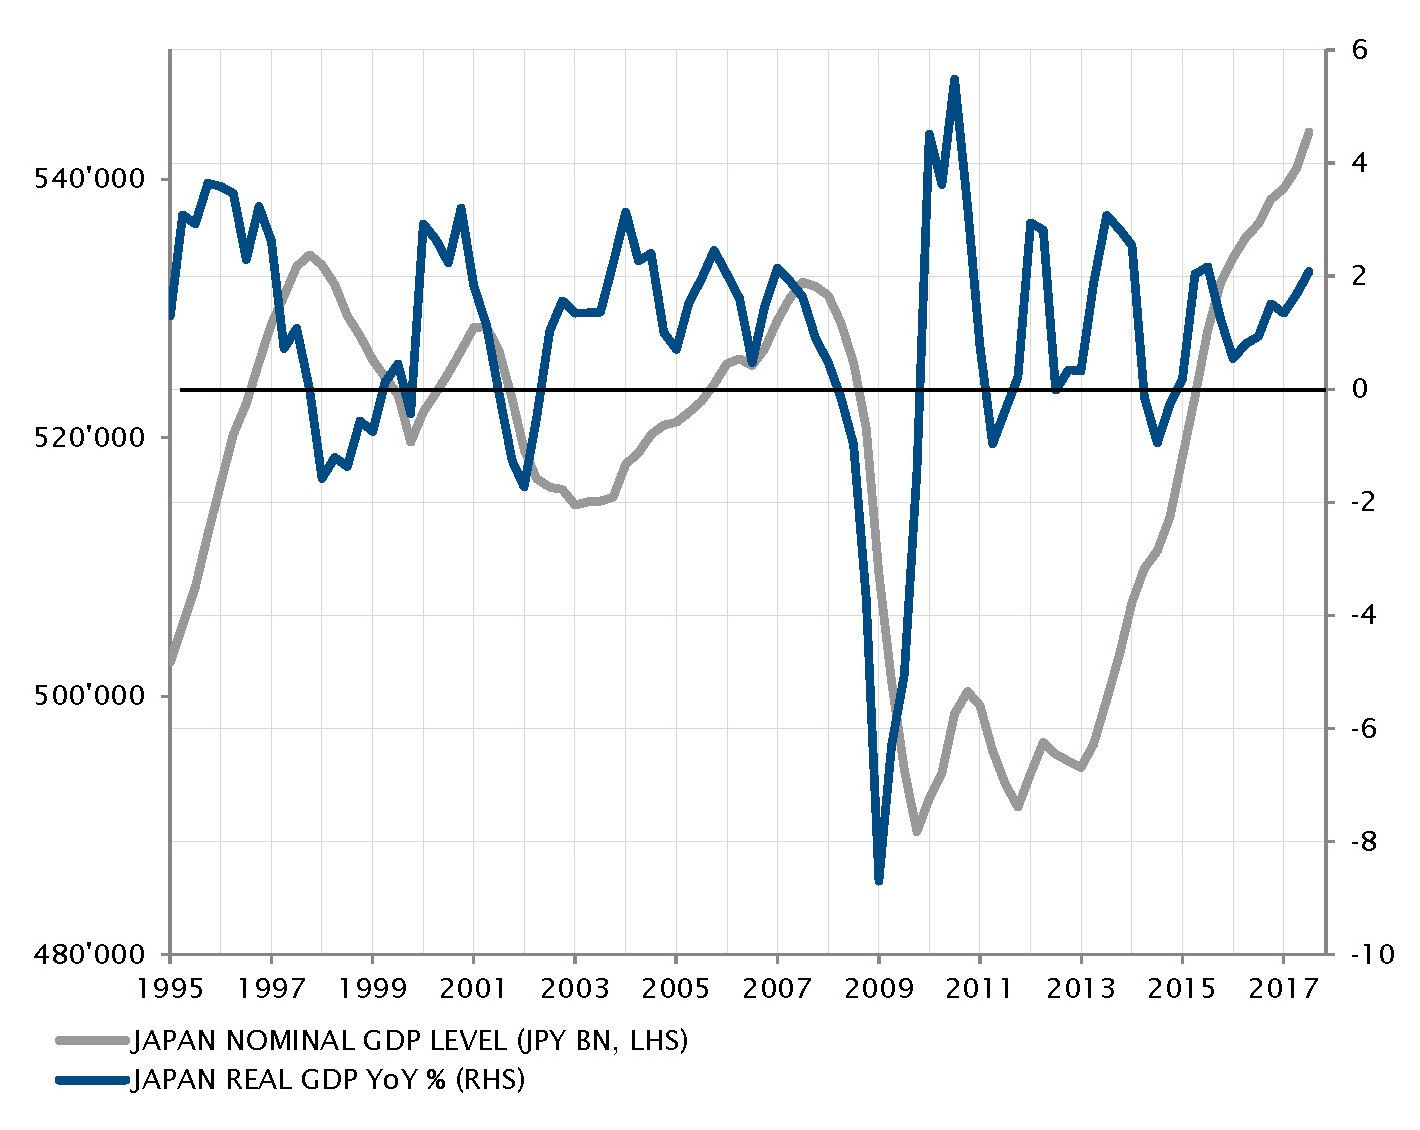 Firm real GDP growth and rediscovered nominal GDP expansion